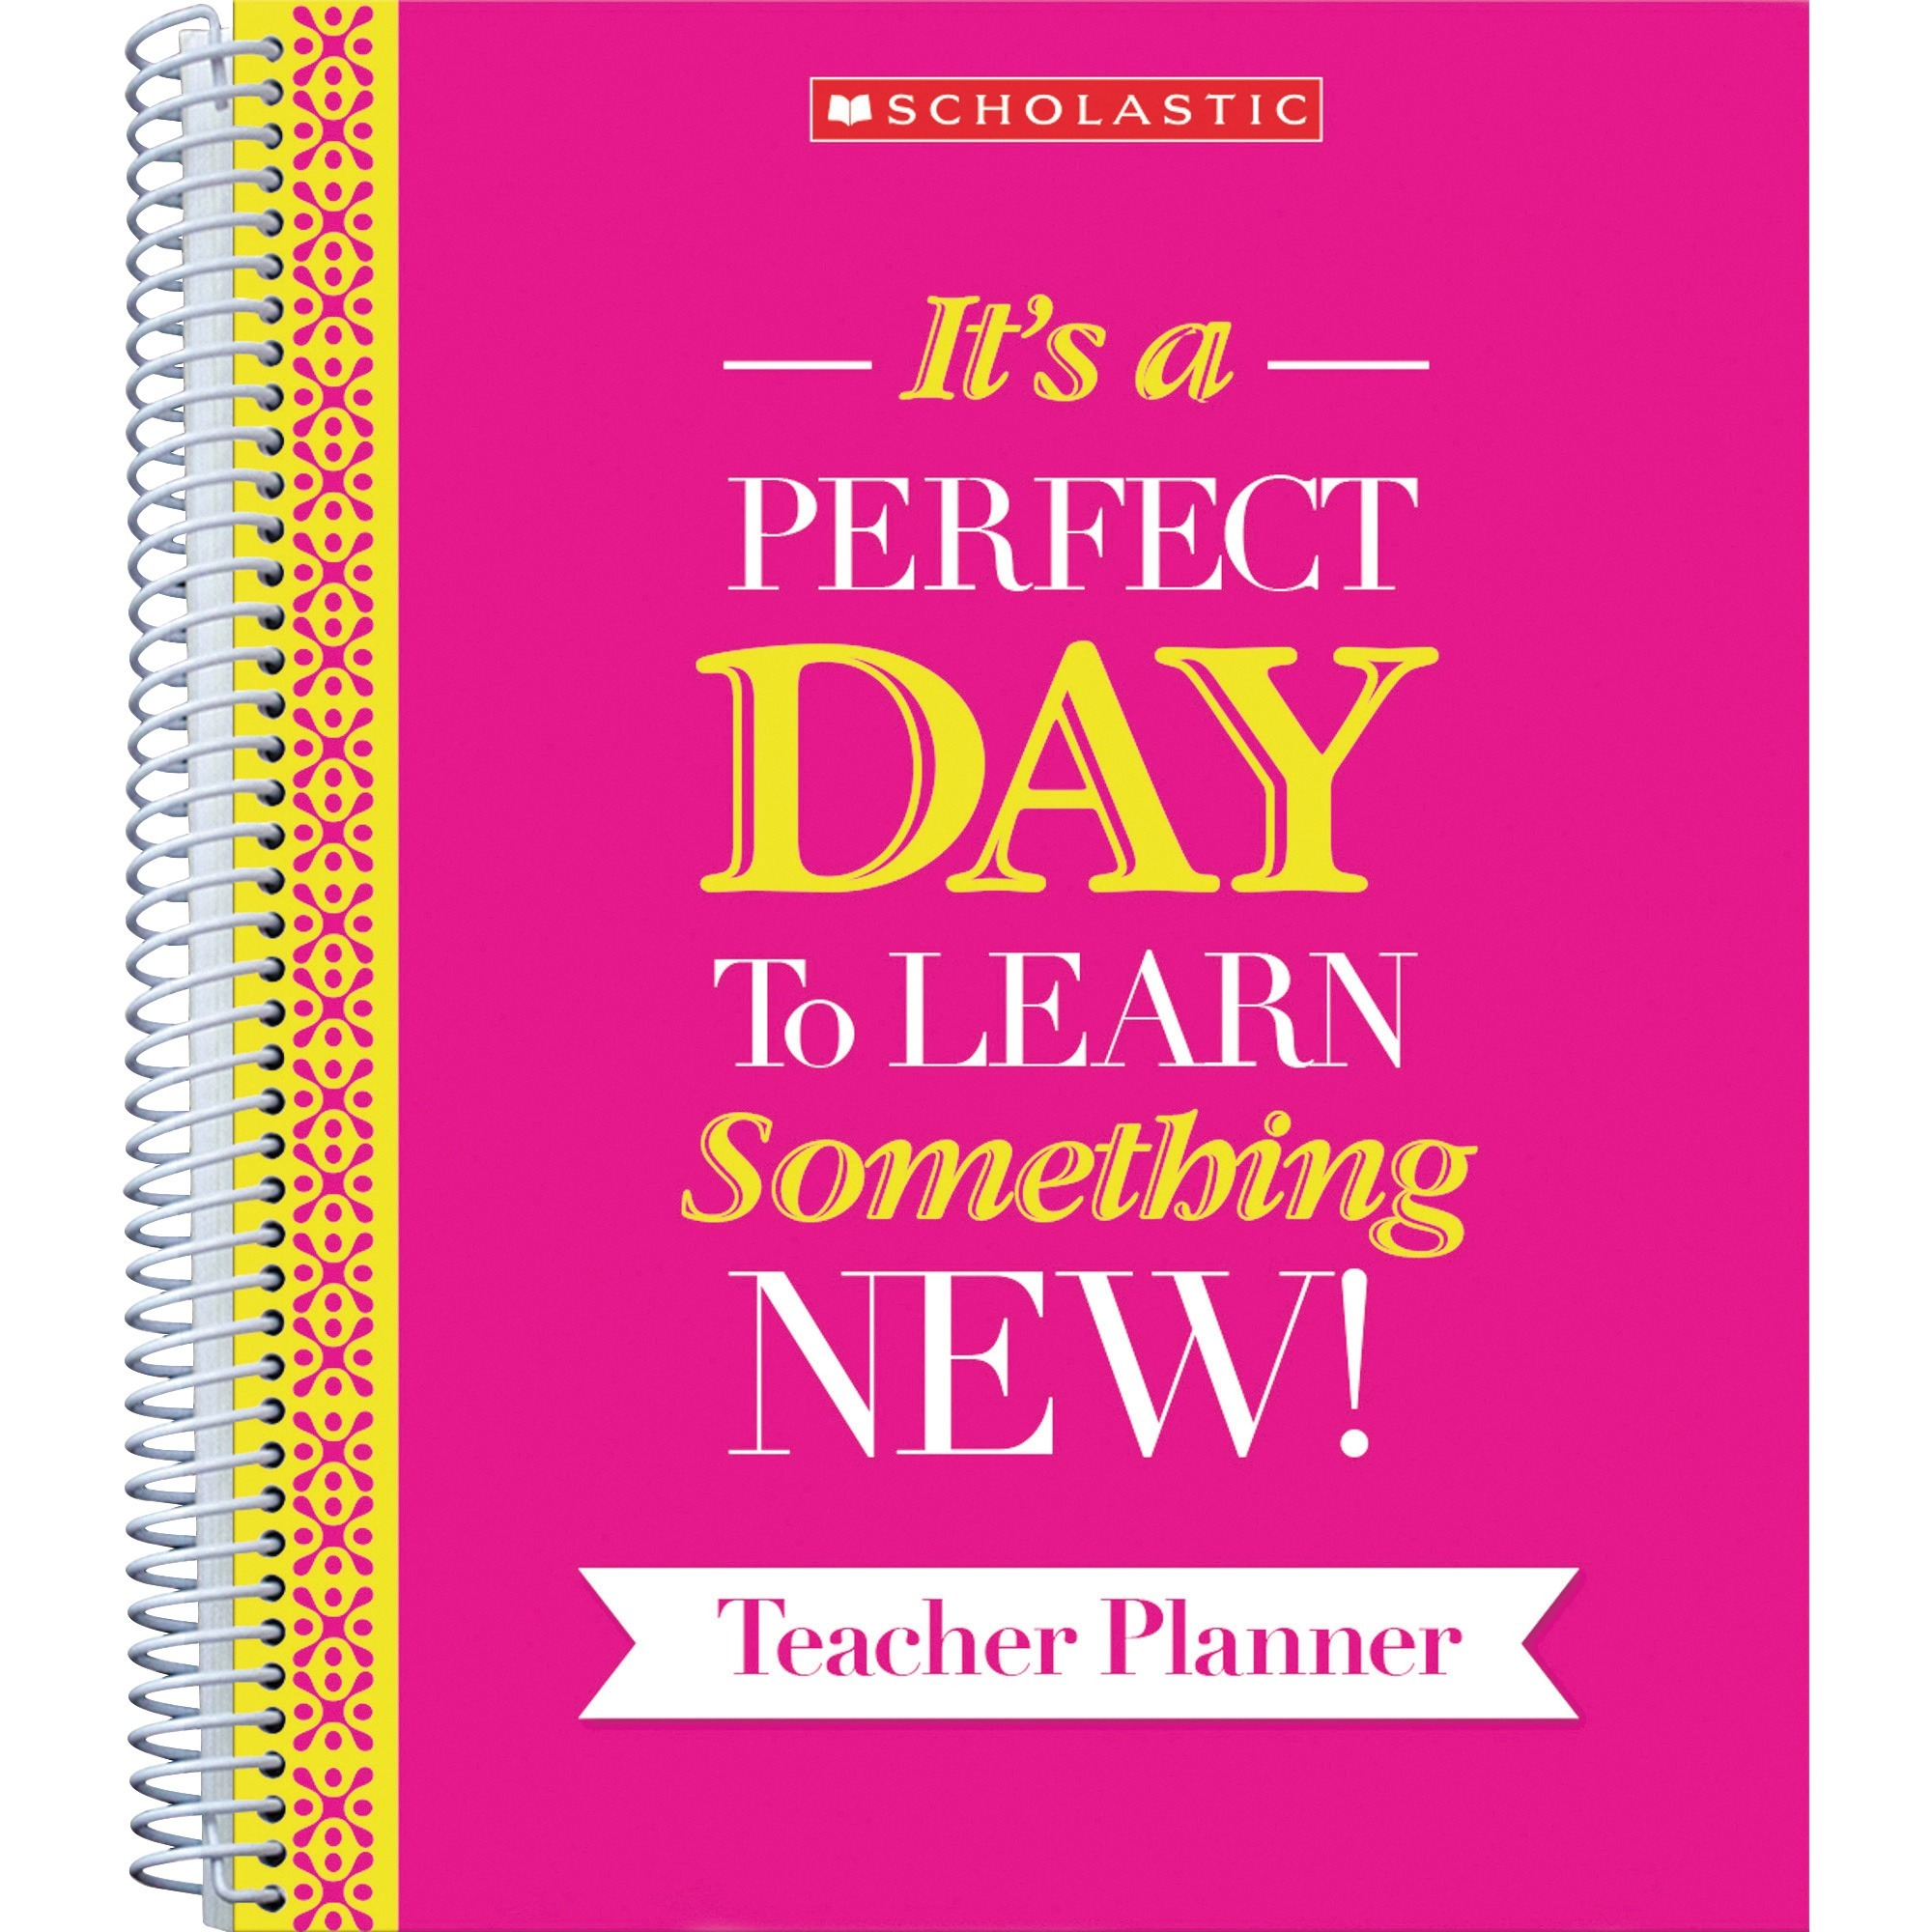 Scholastic Inspirational Teacher Planner - Yes - Monthly, Weekly - 2 Month, 2 Week Double Page Layout - 9 X 11 - Spiral Bound - Multi - Pink